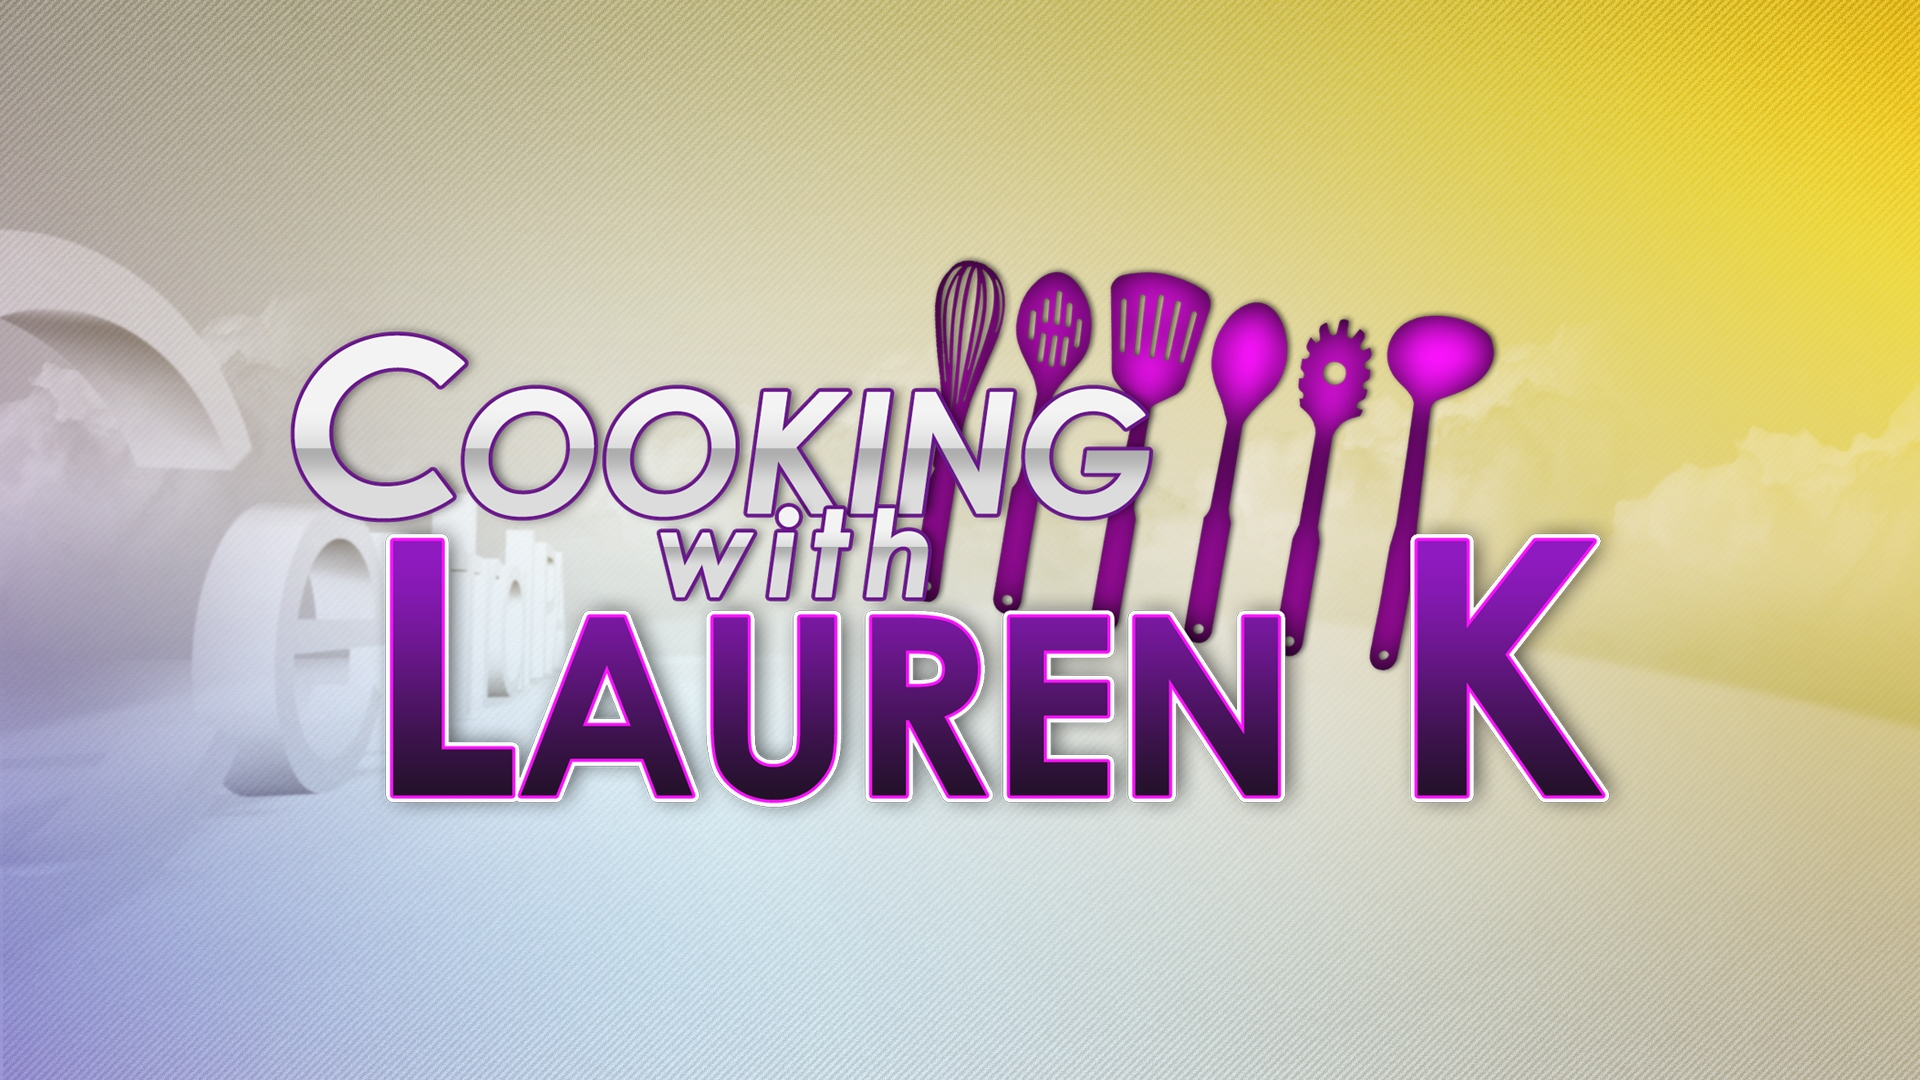 cooking with lauren k logo_1436286795448.JPG